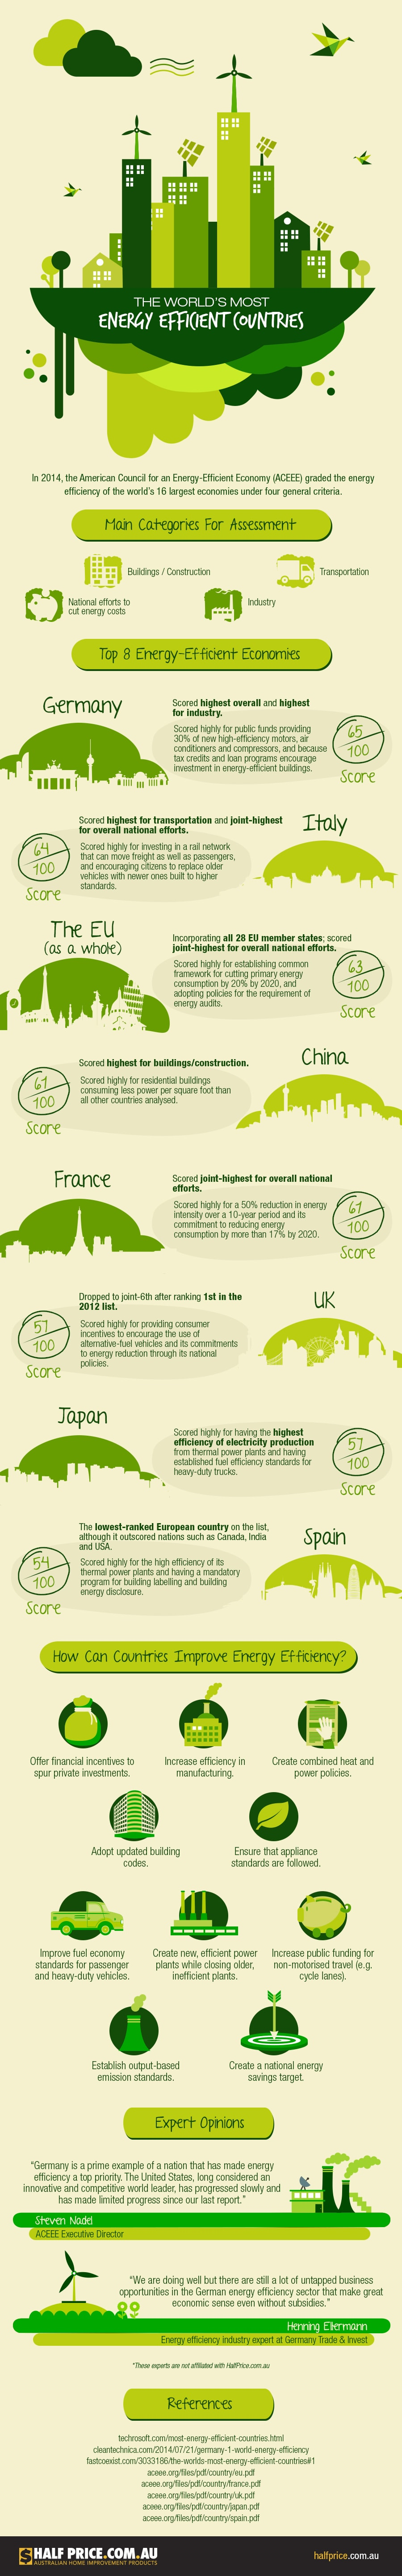 World's-Most-Energy-Efficient-Countries-Infographic